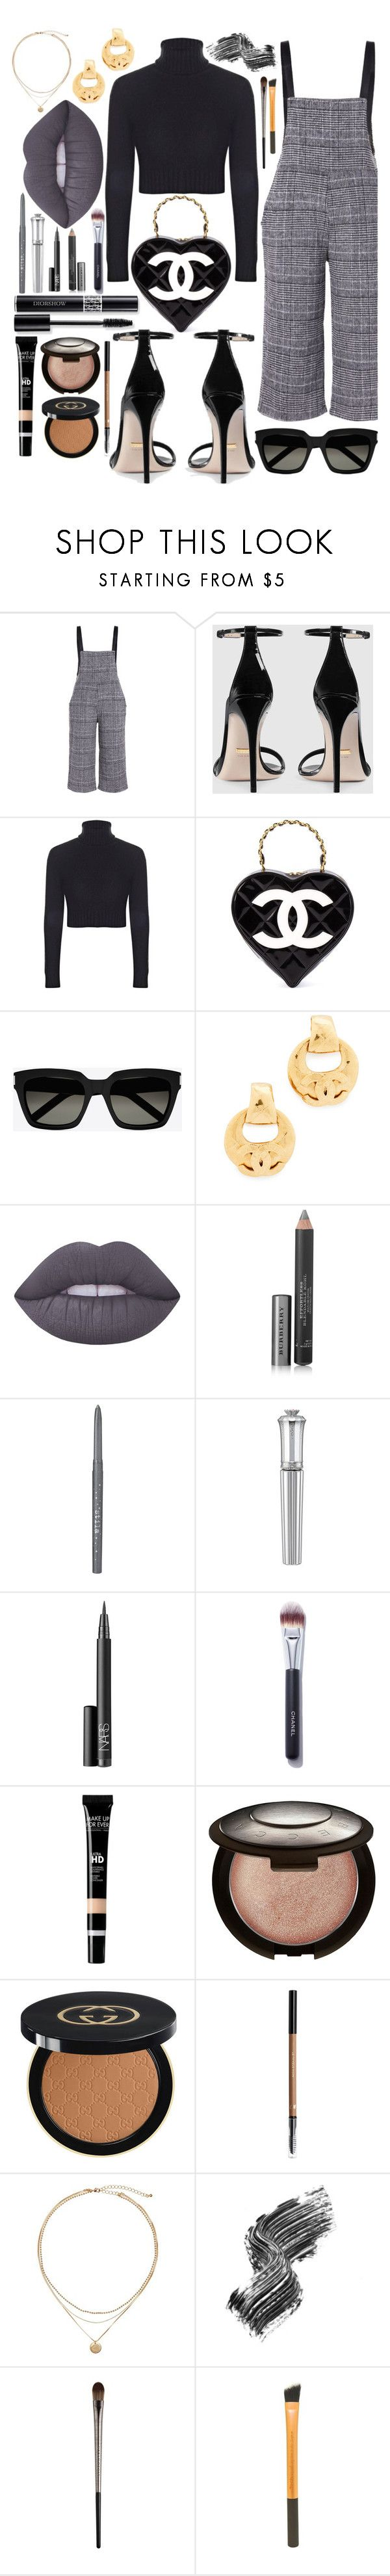 """Dungarees"" by callyfordham ❤ liked on Polyvore featuring Gucci, Boohoo, Chanel, Yves Saint Laurent, Lime Crime, Burberry, Stila, Morgan Lane, NARS Cosmetics and PINCEAU"